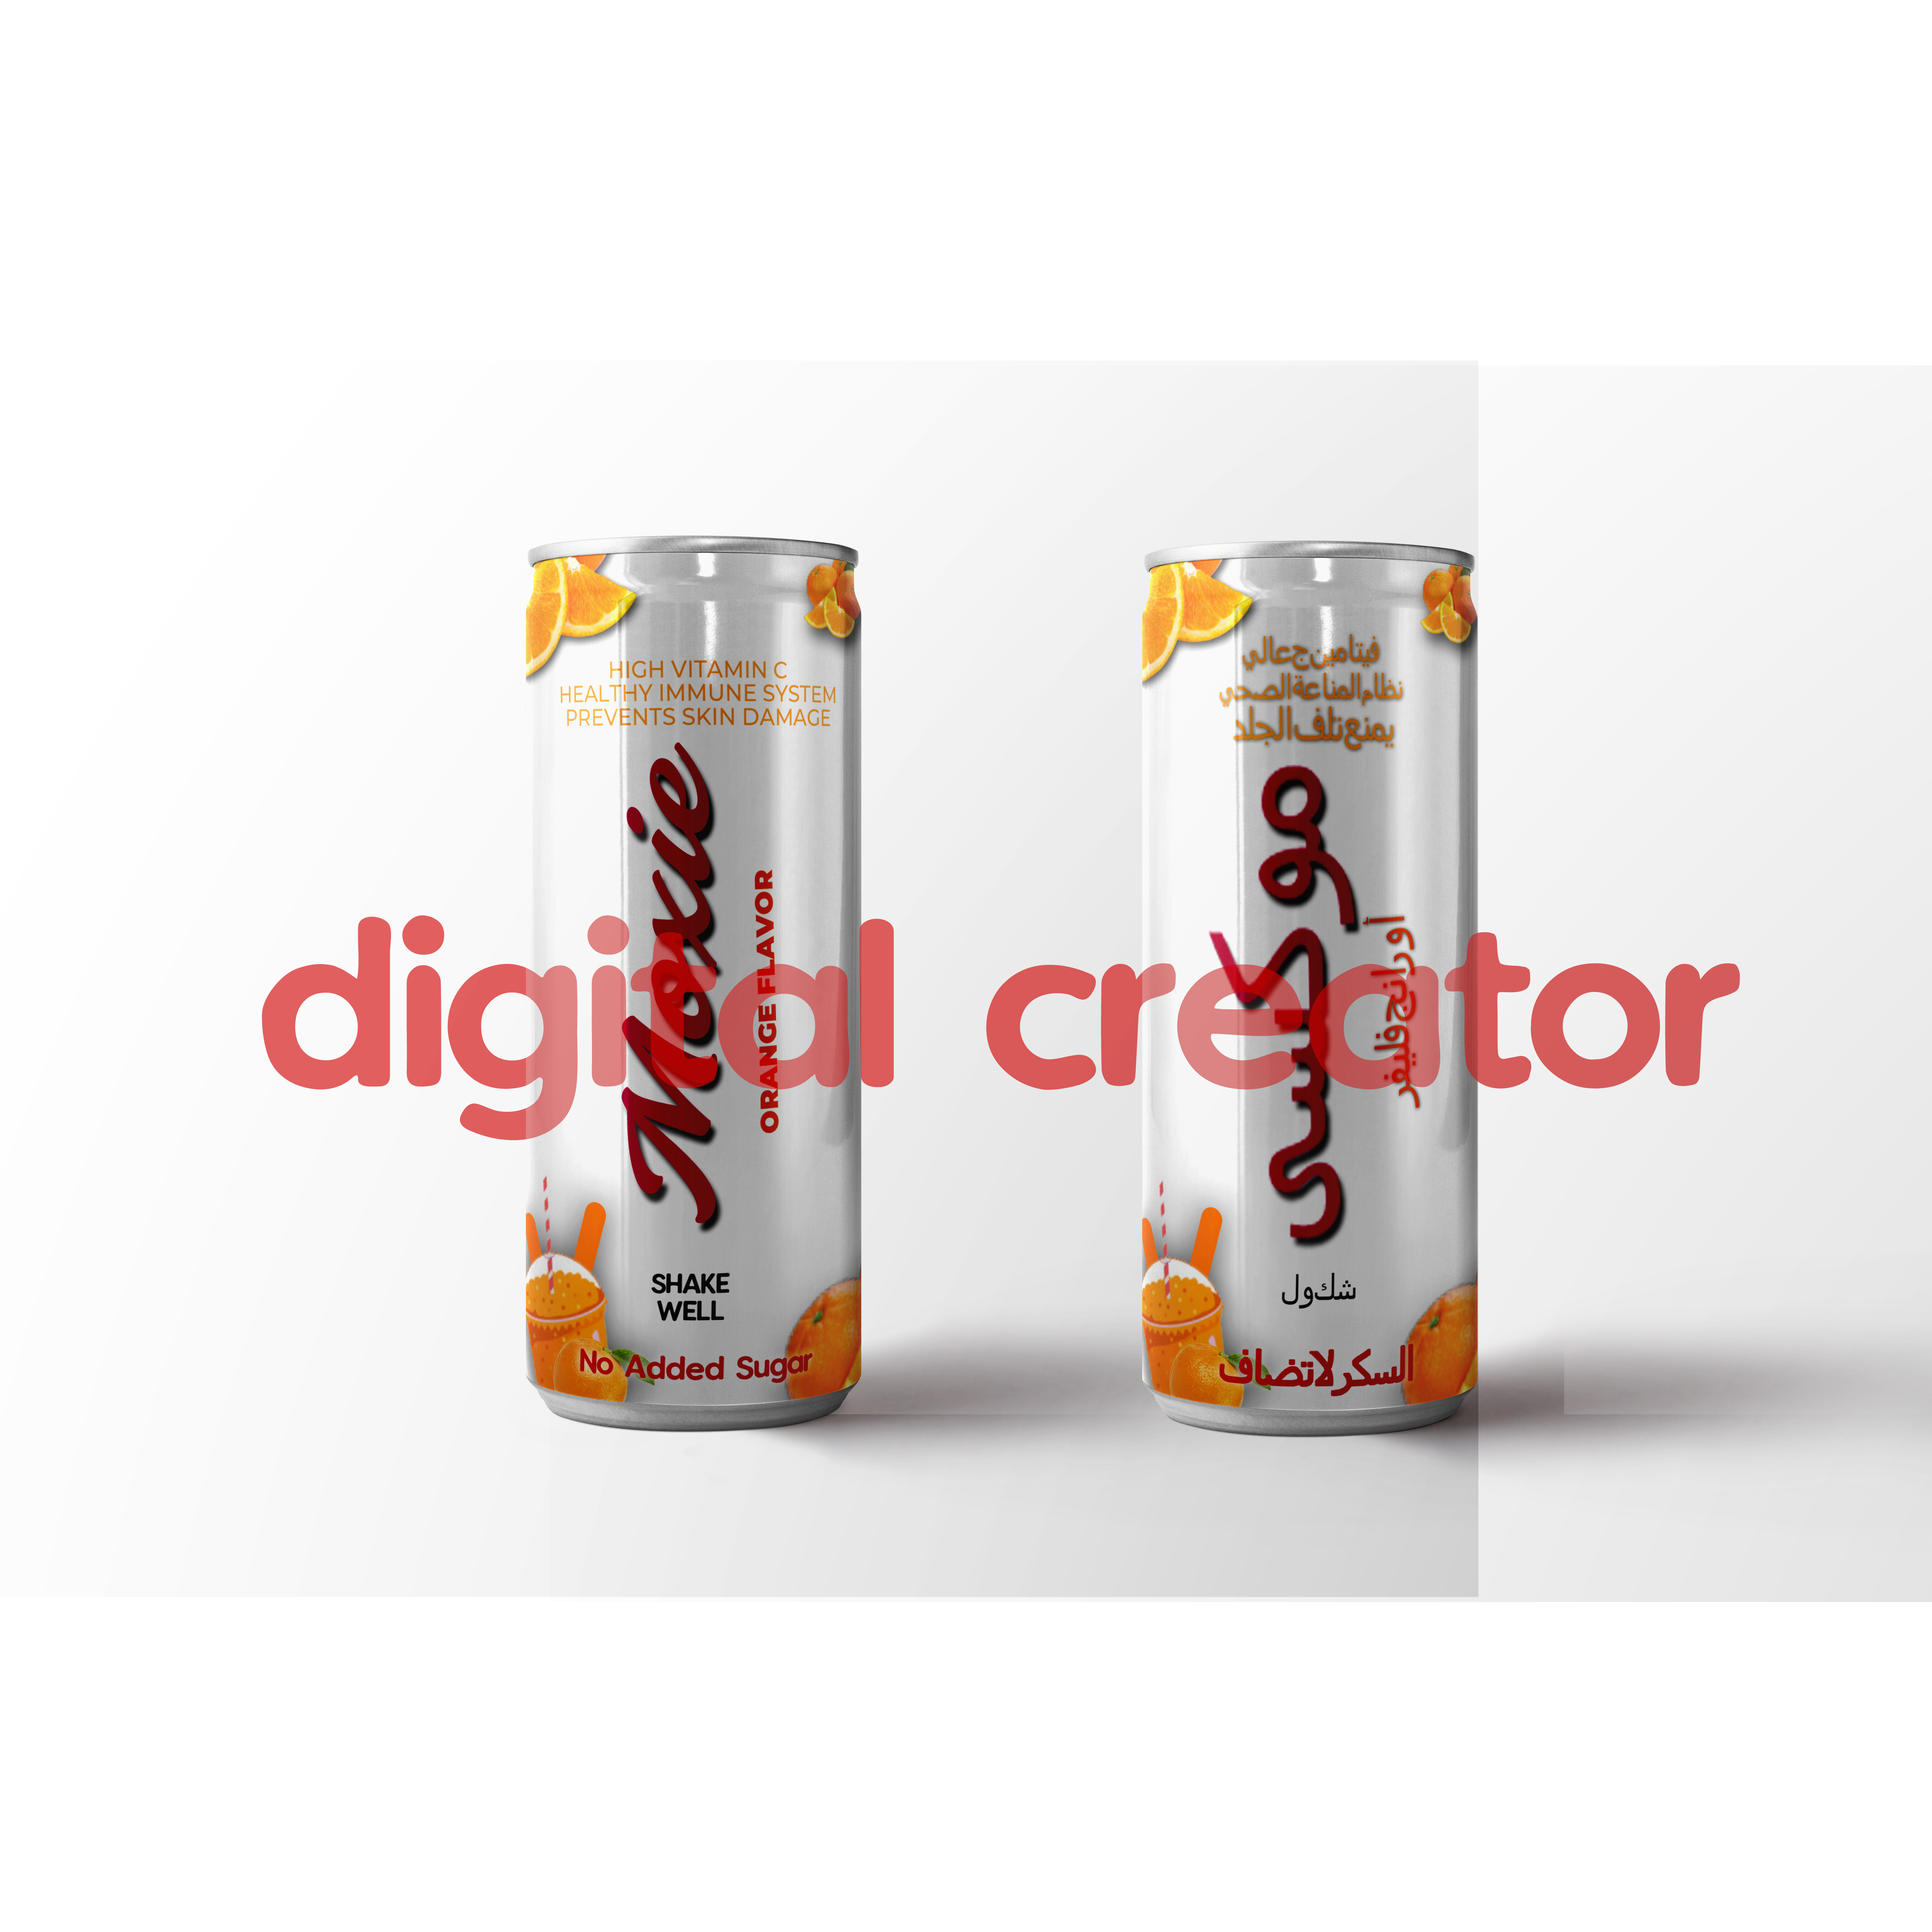 I will design product label and professional design